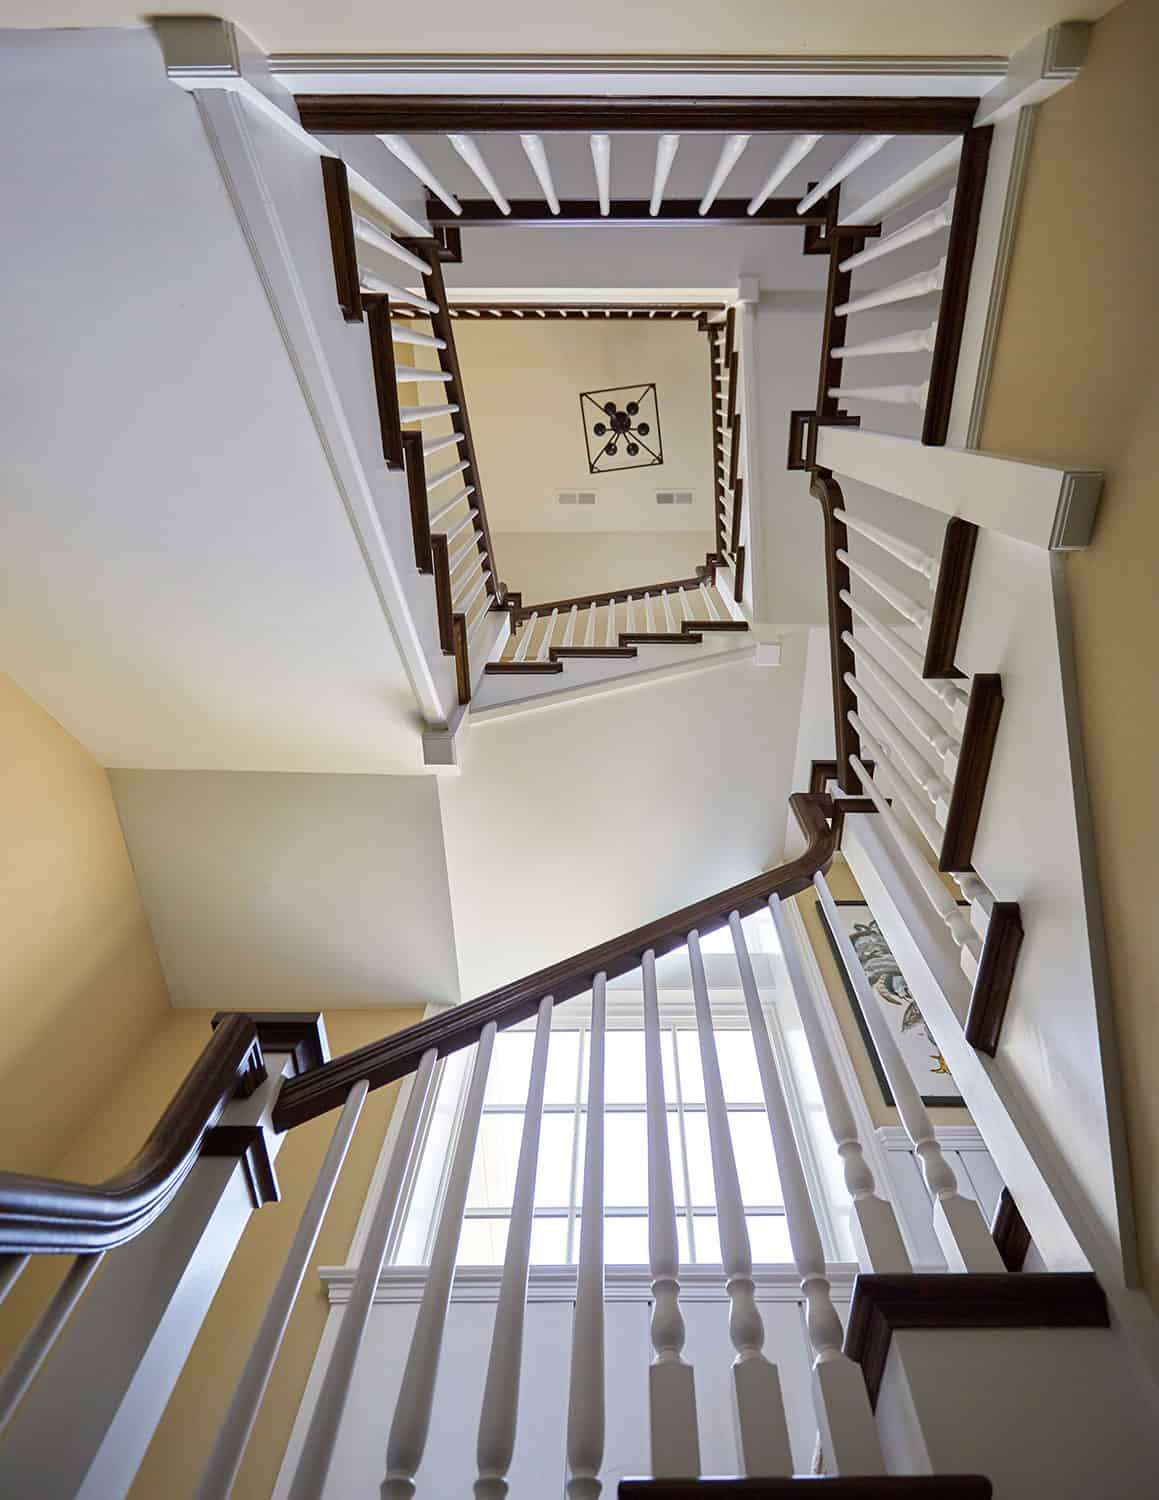 oak-treads-handrail-white-painted-balusters